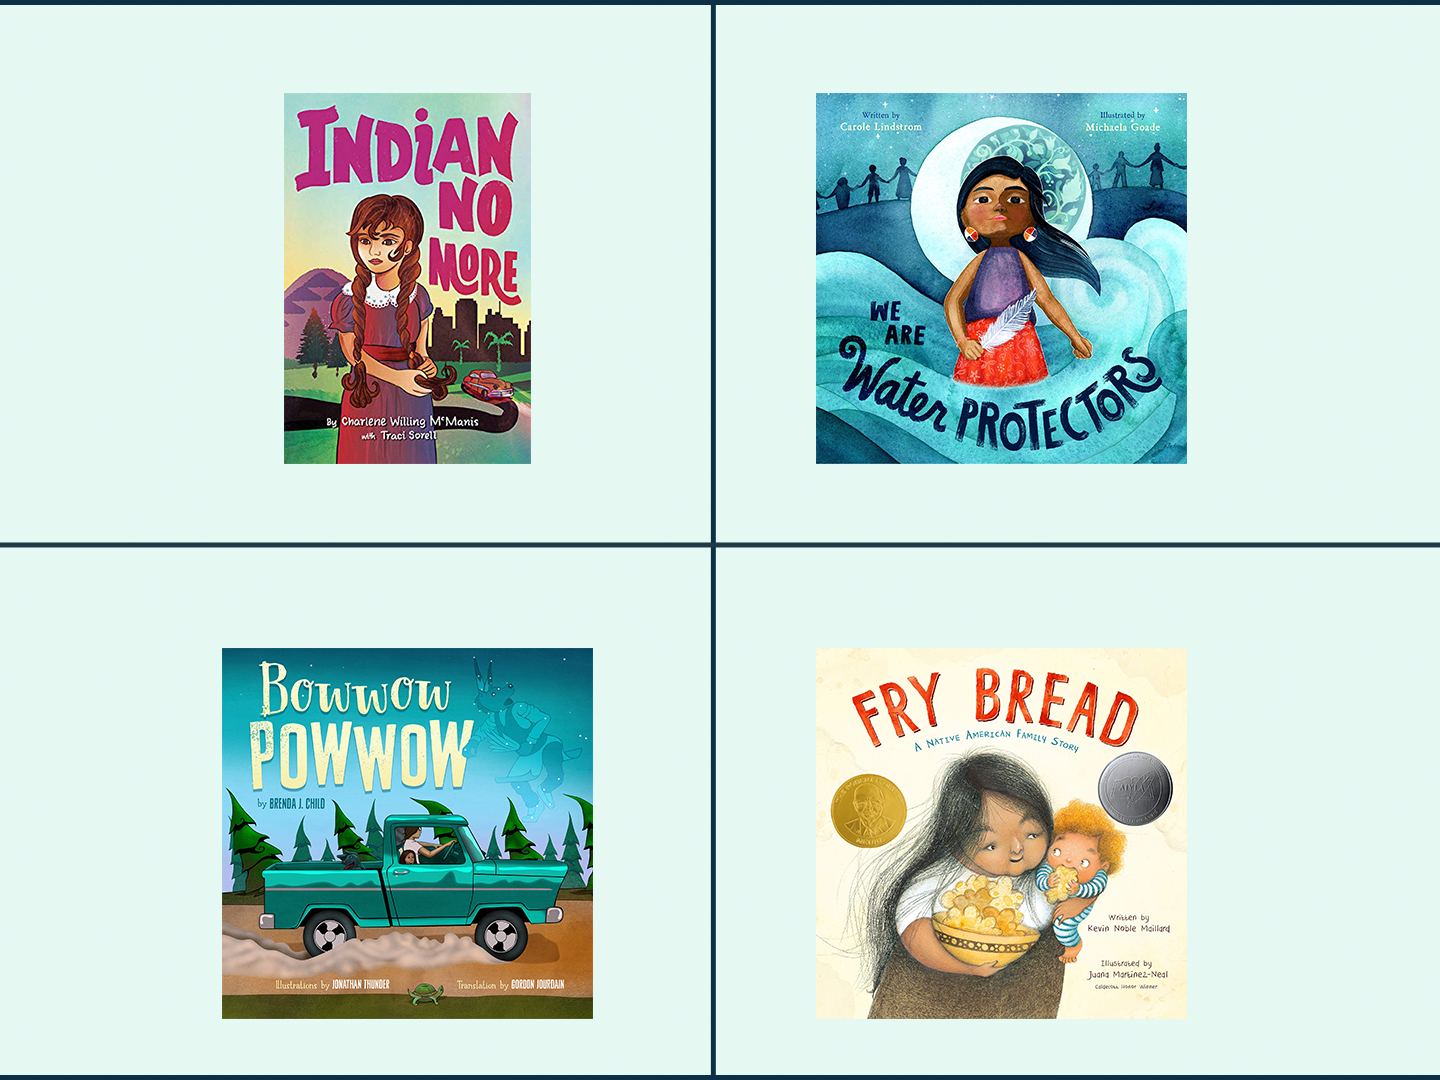 children's books by native american authors